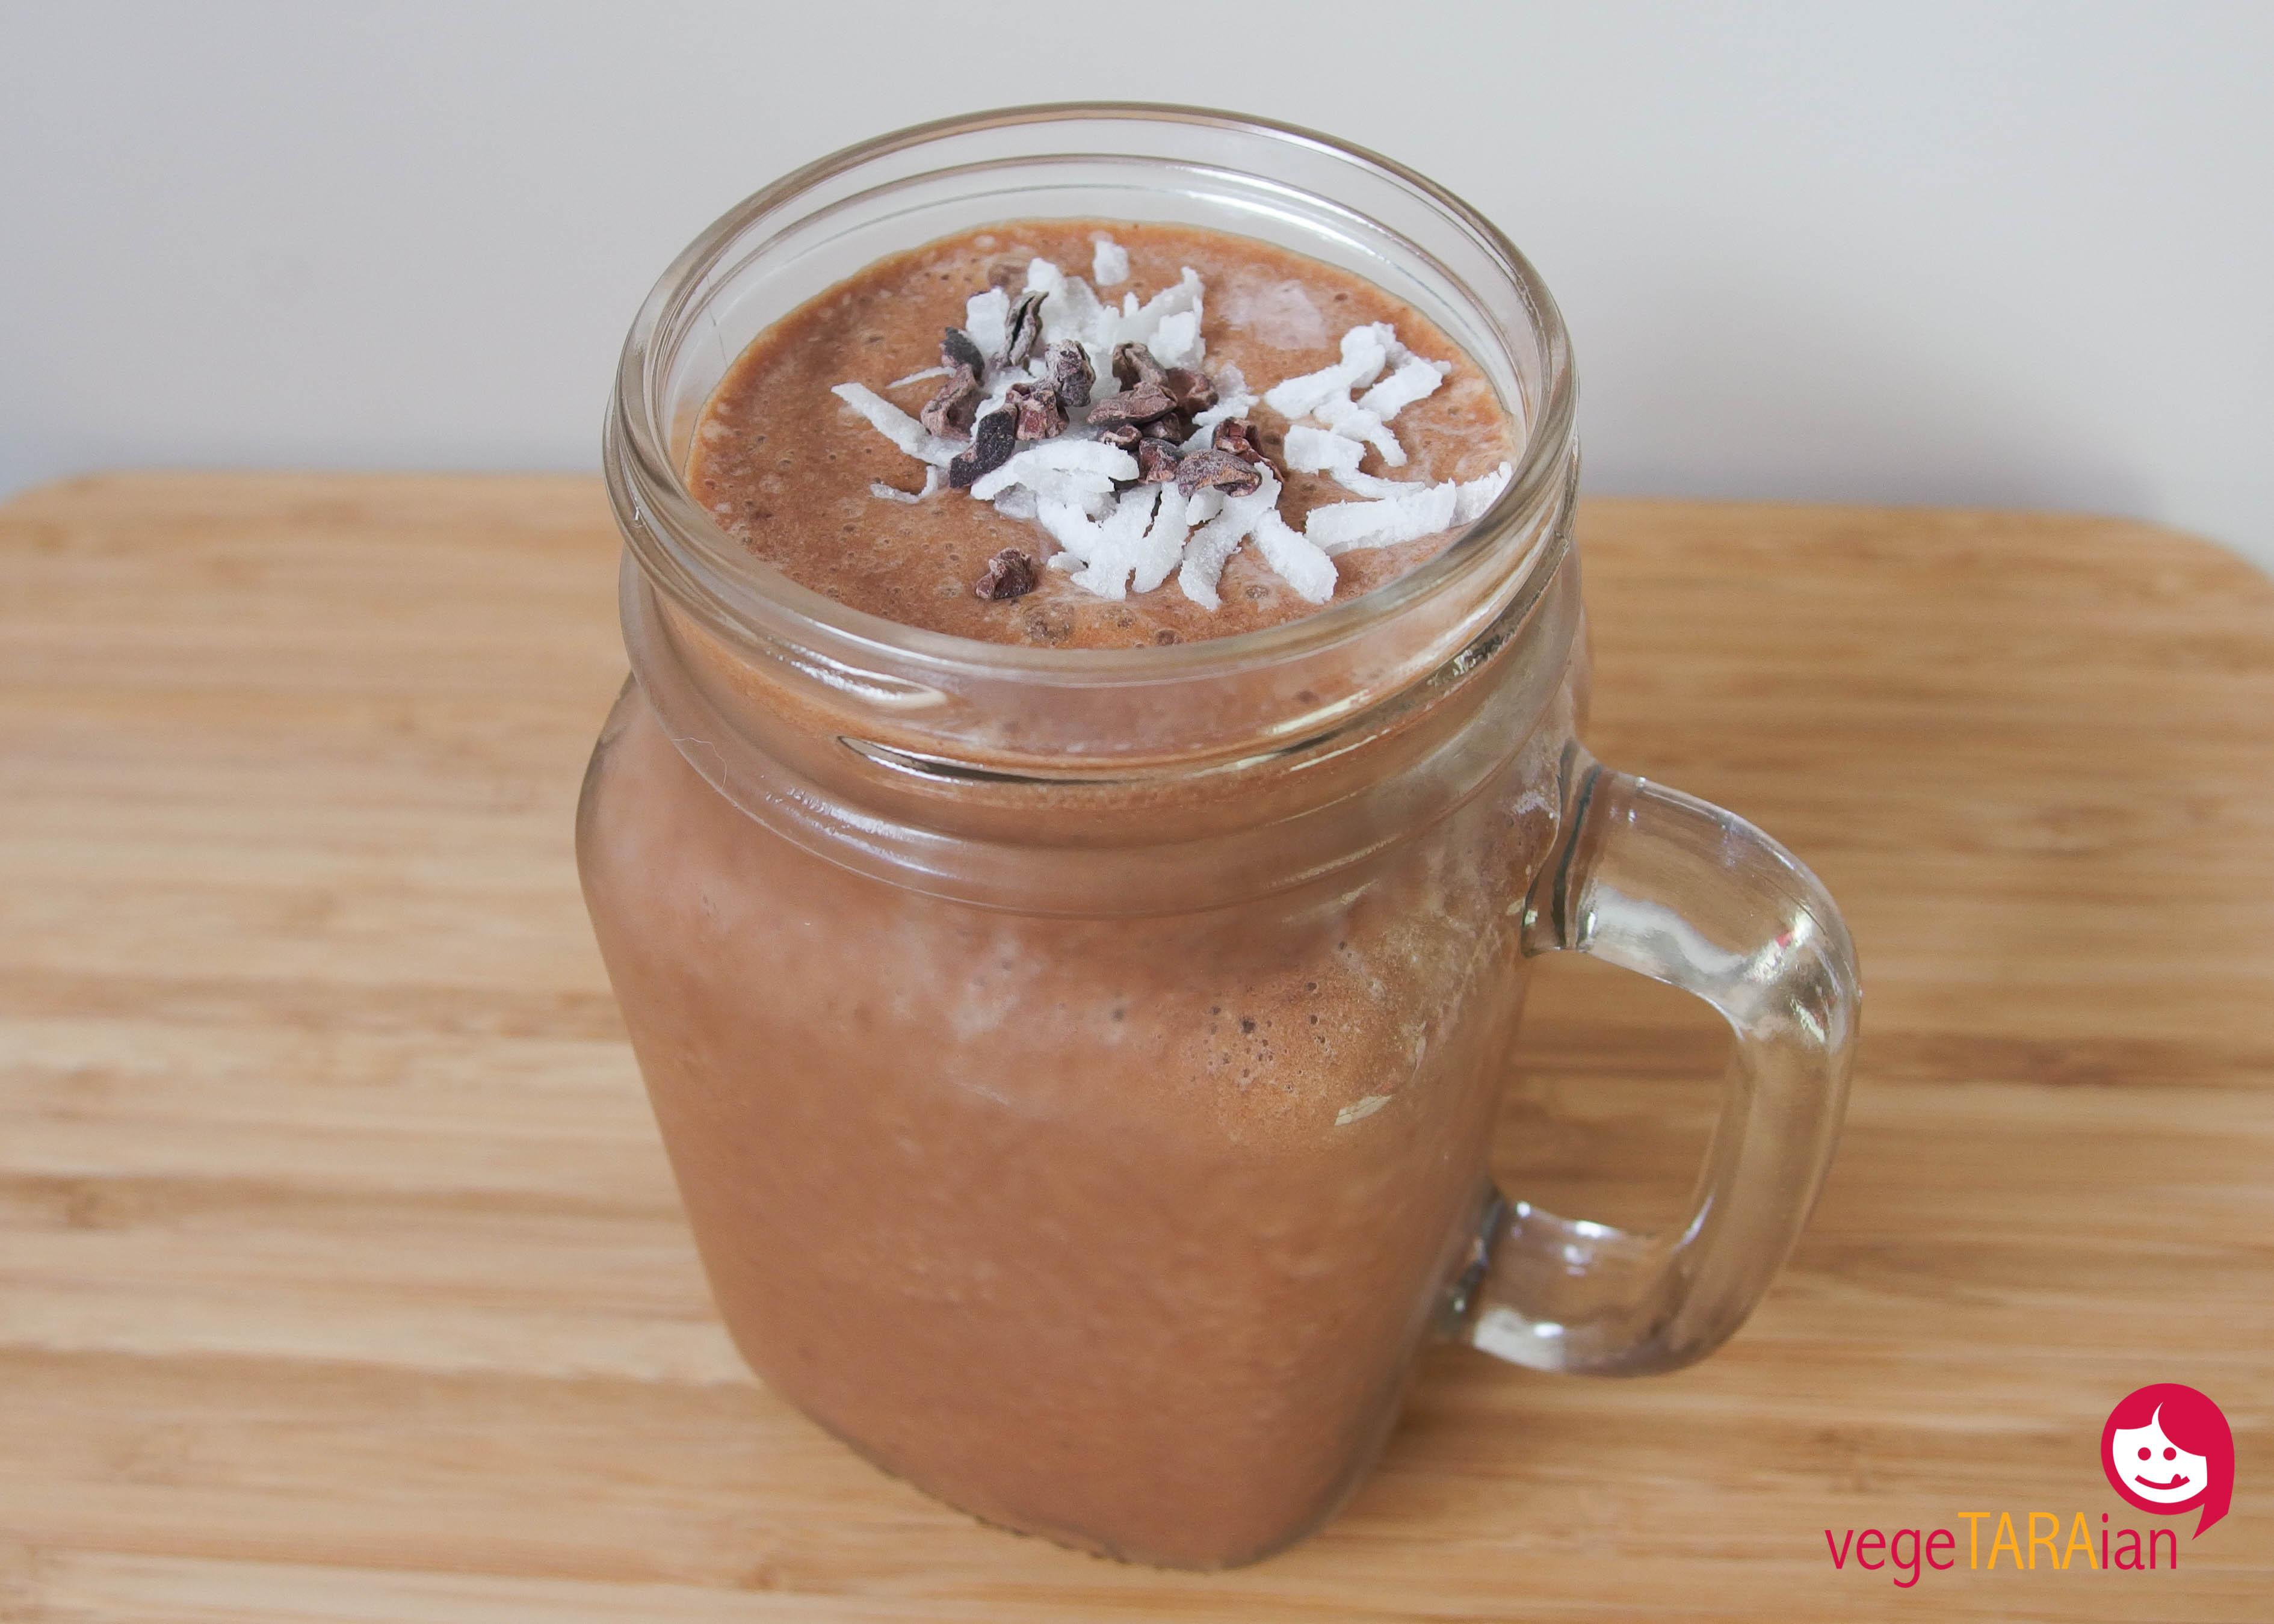 Smoothie with dates in Sydney